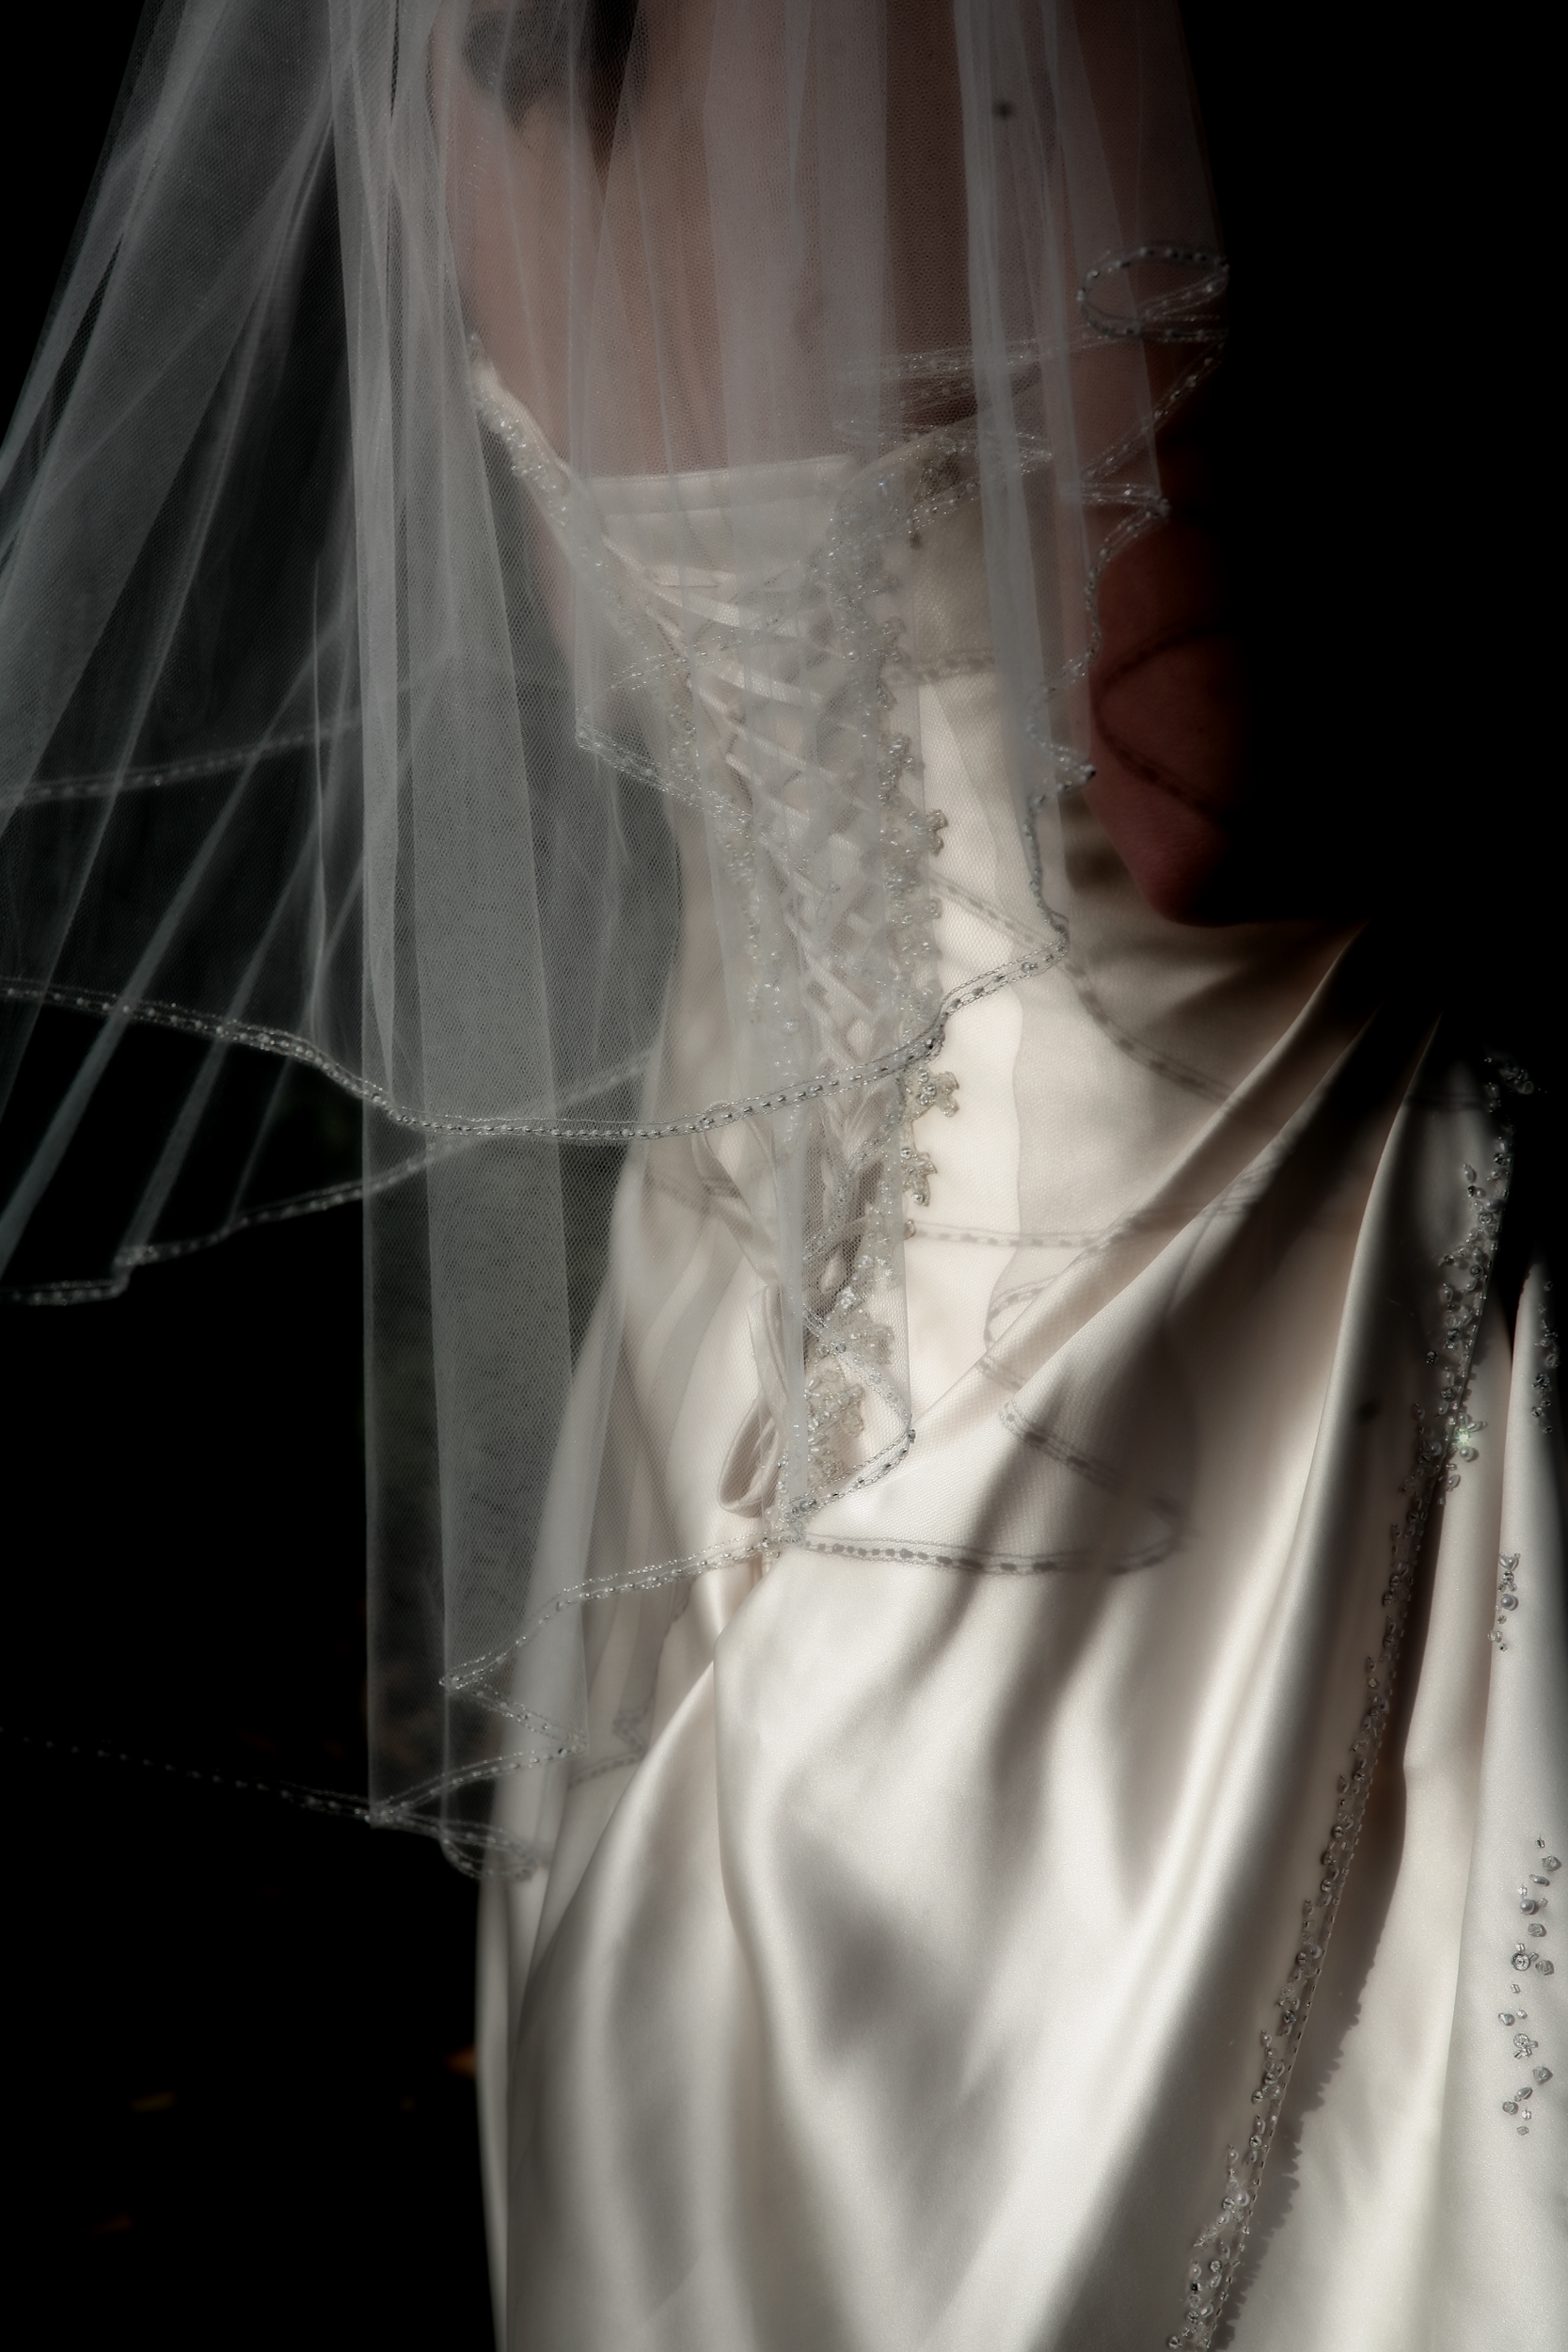 The back of a wedding dress